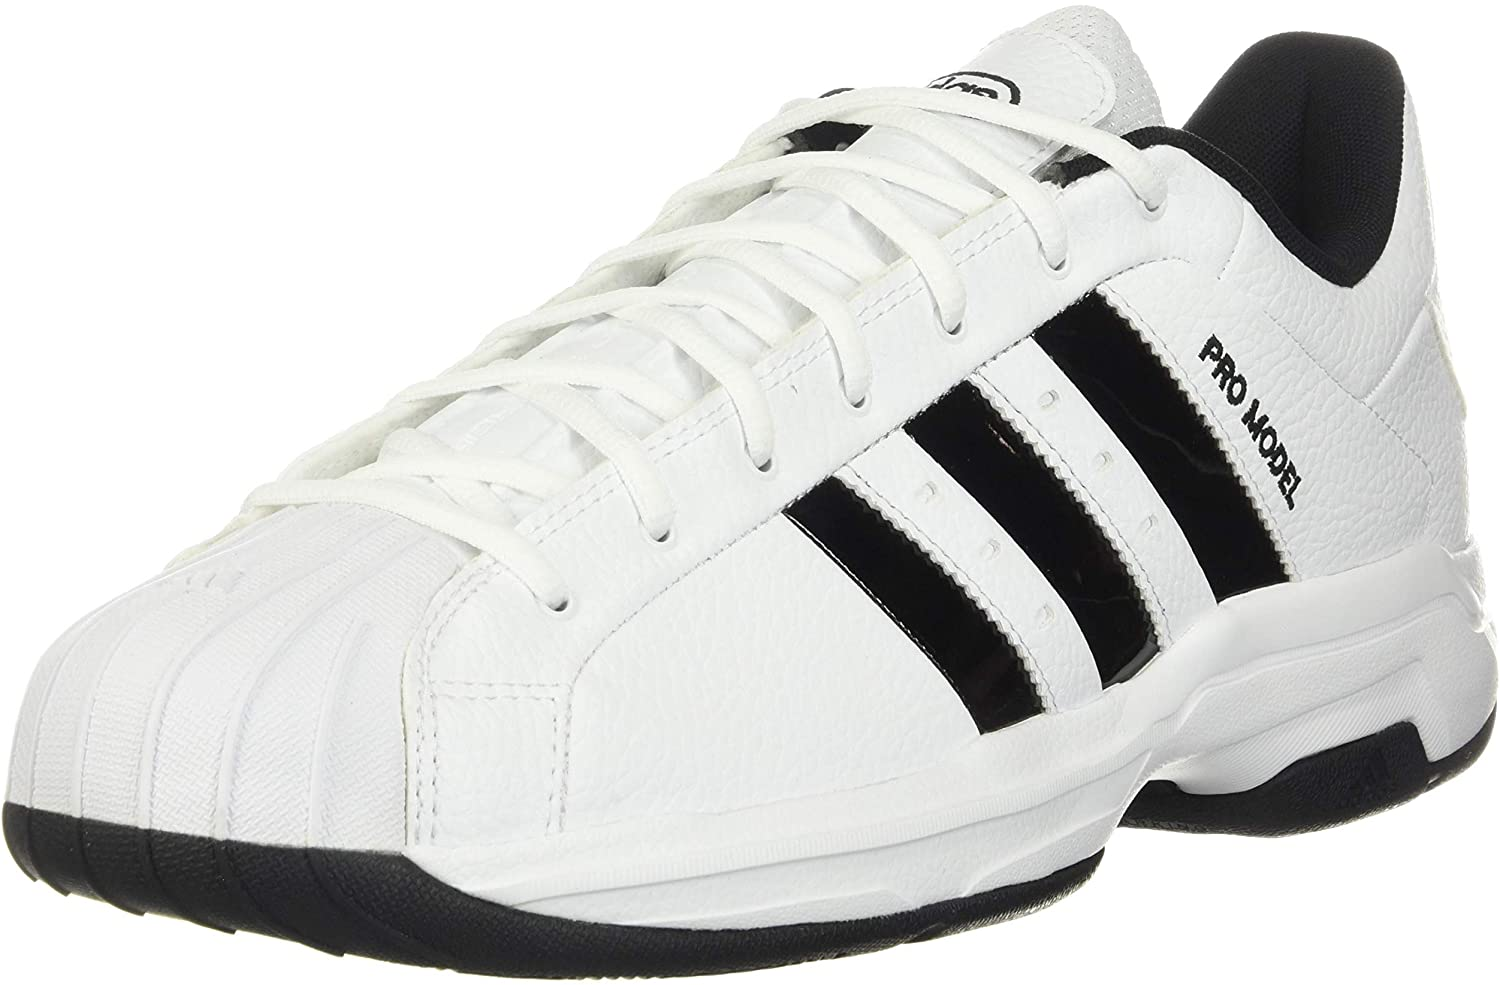 adidas Unisex-Adult Pro Model 2g Basketball Low Classic ! Super beauty product restock quality top! Shoe